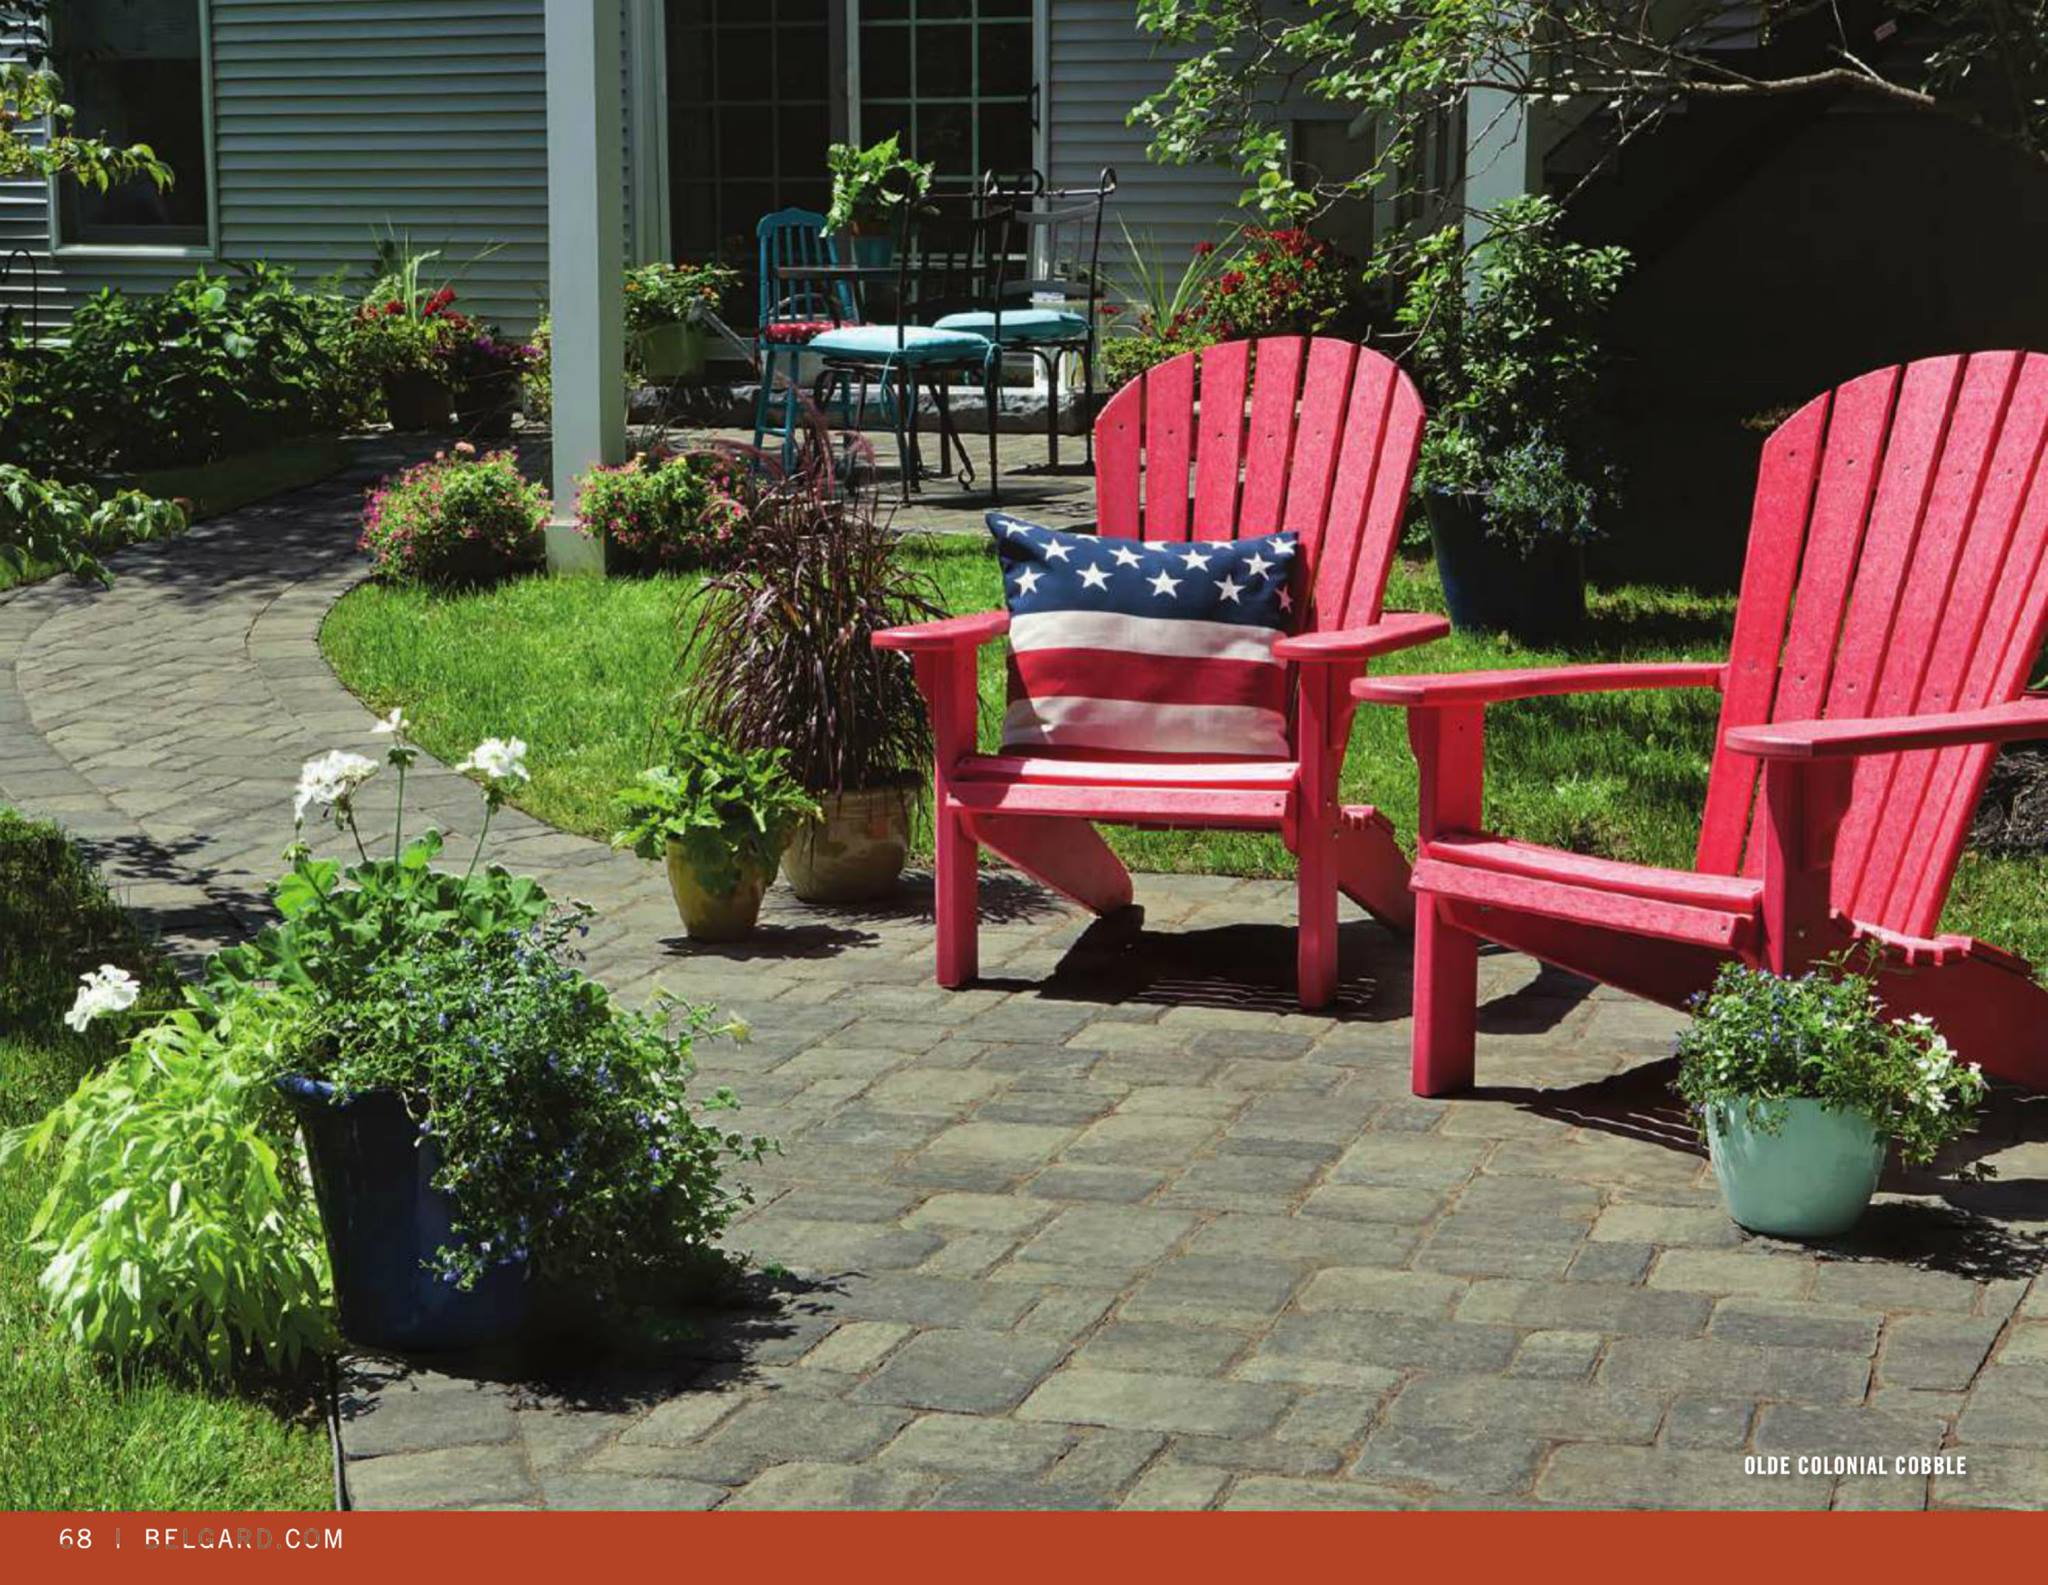 Belgard Carpenter Costin Patio Design Walkway Adirondack chairs